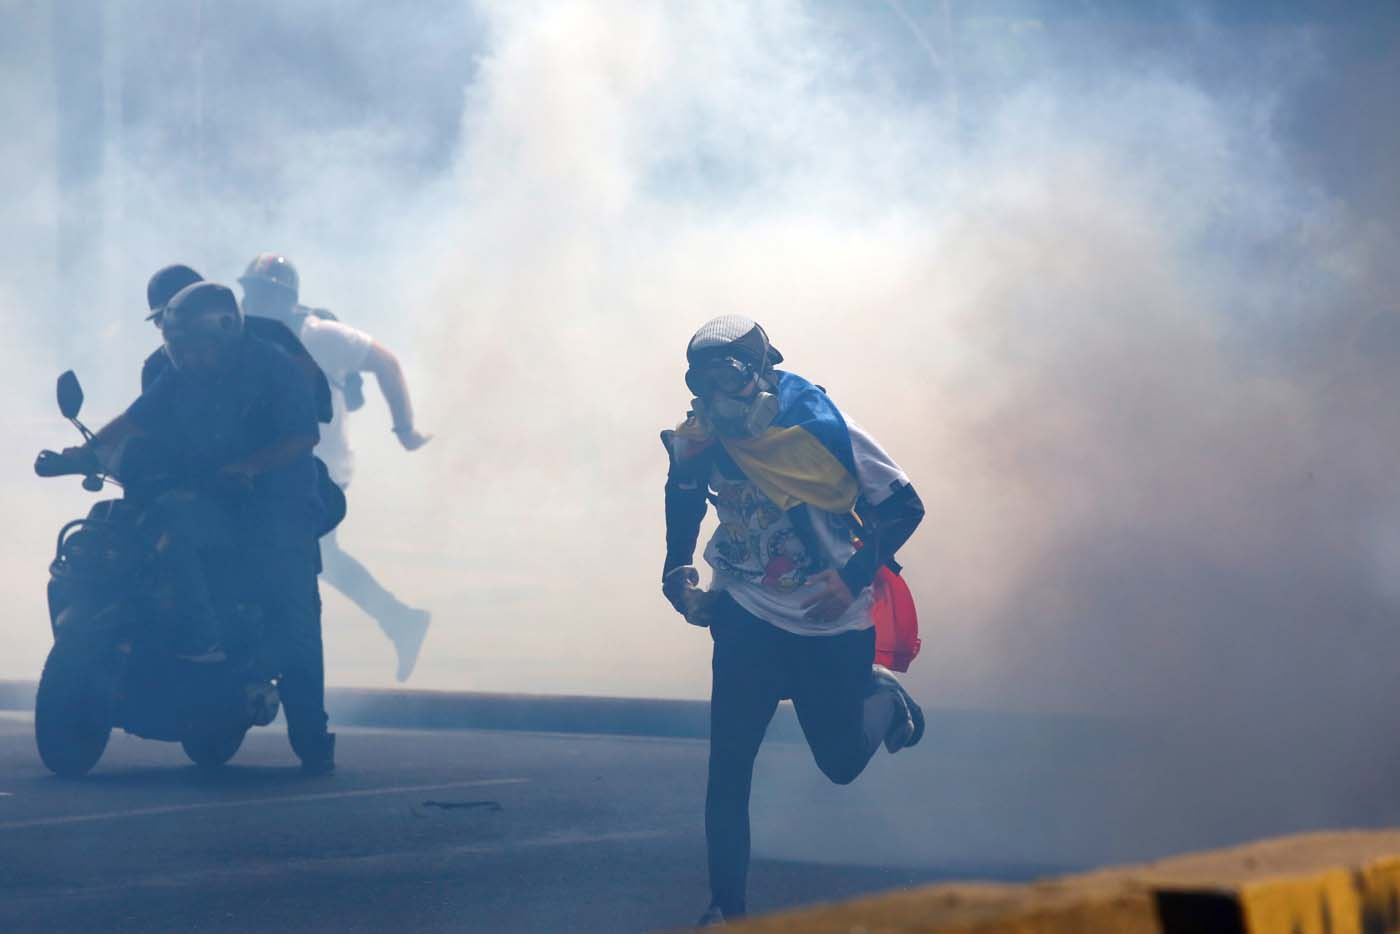 Demonstrators run away while clashing with riot security forces during a rally against President Nicolas Maduro in Caracas, Venezuela May 24, 2017. REUTERS/Carlos Garcia Rawlins